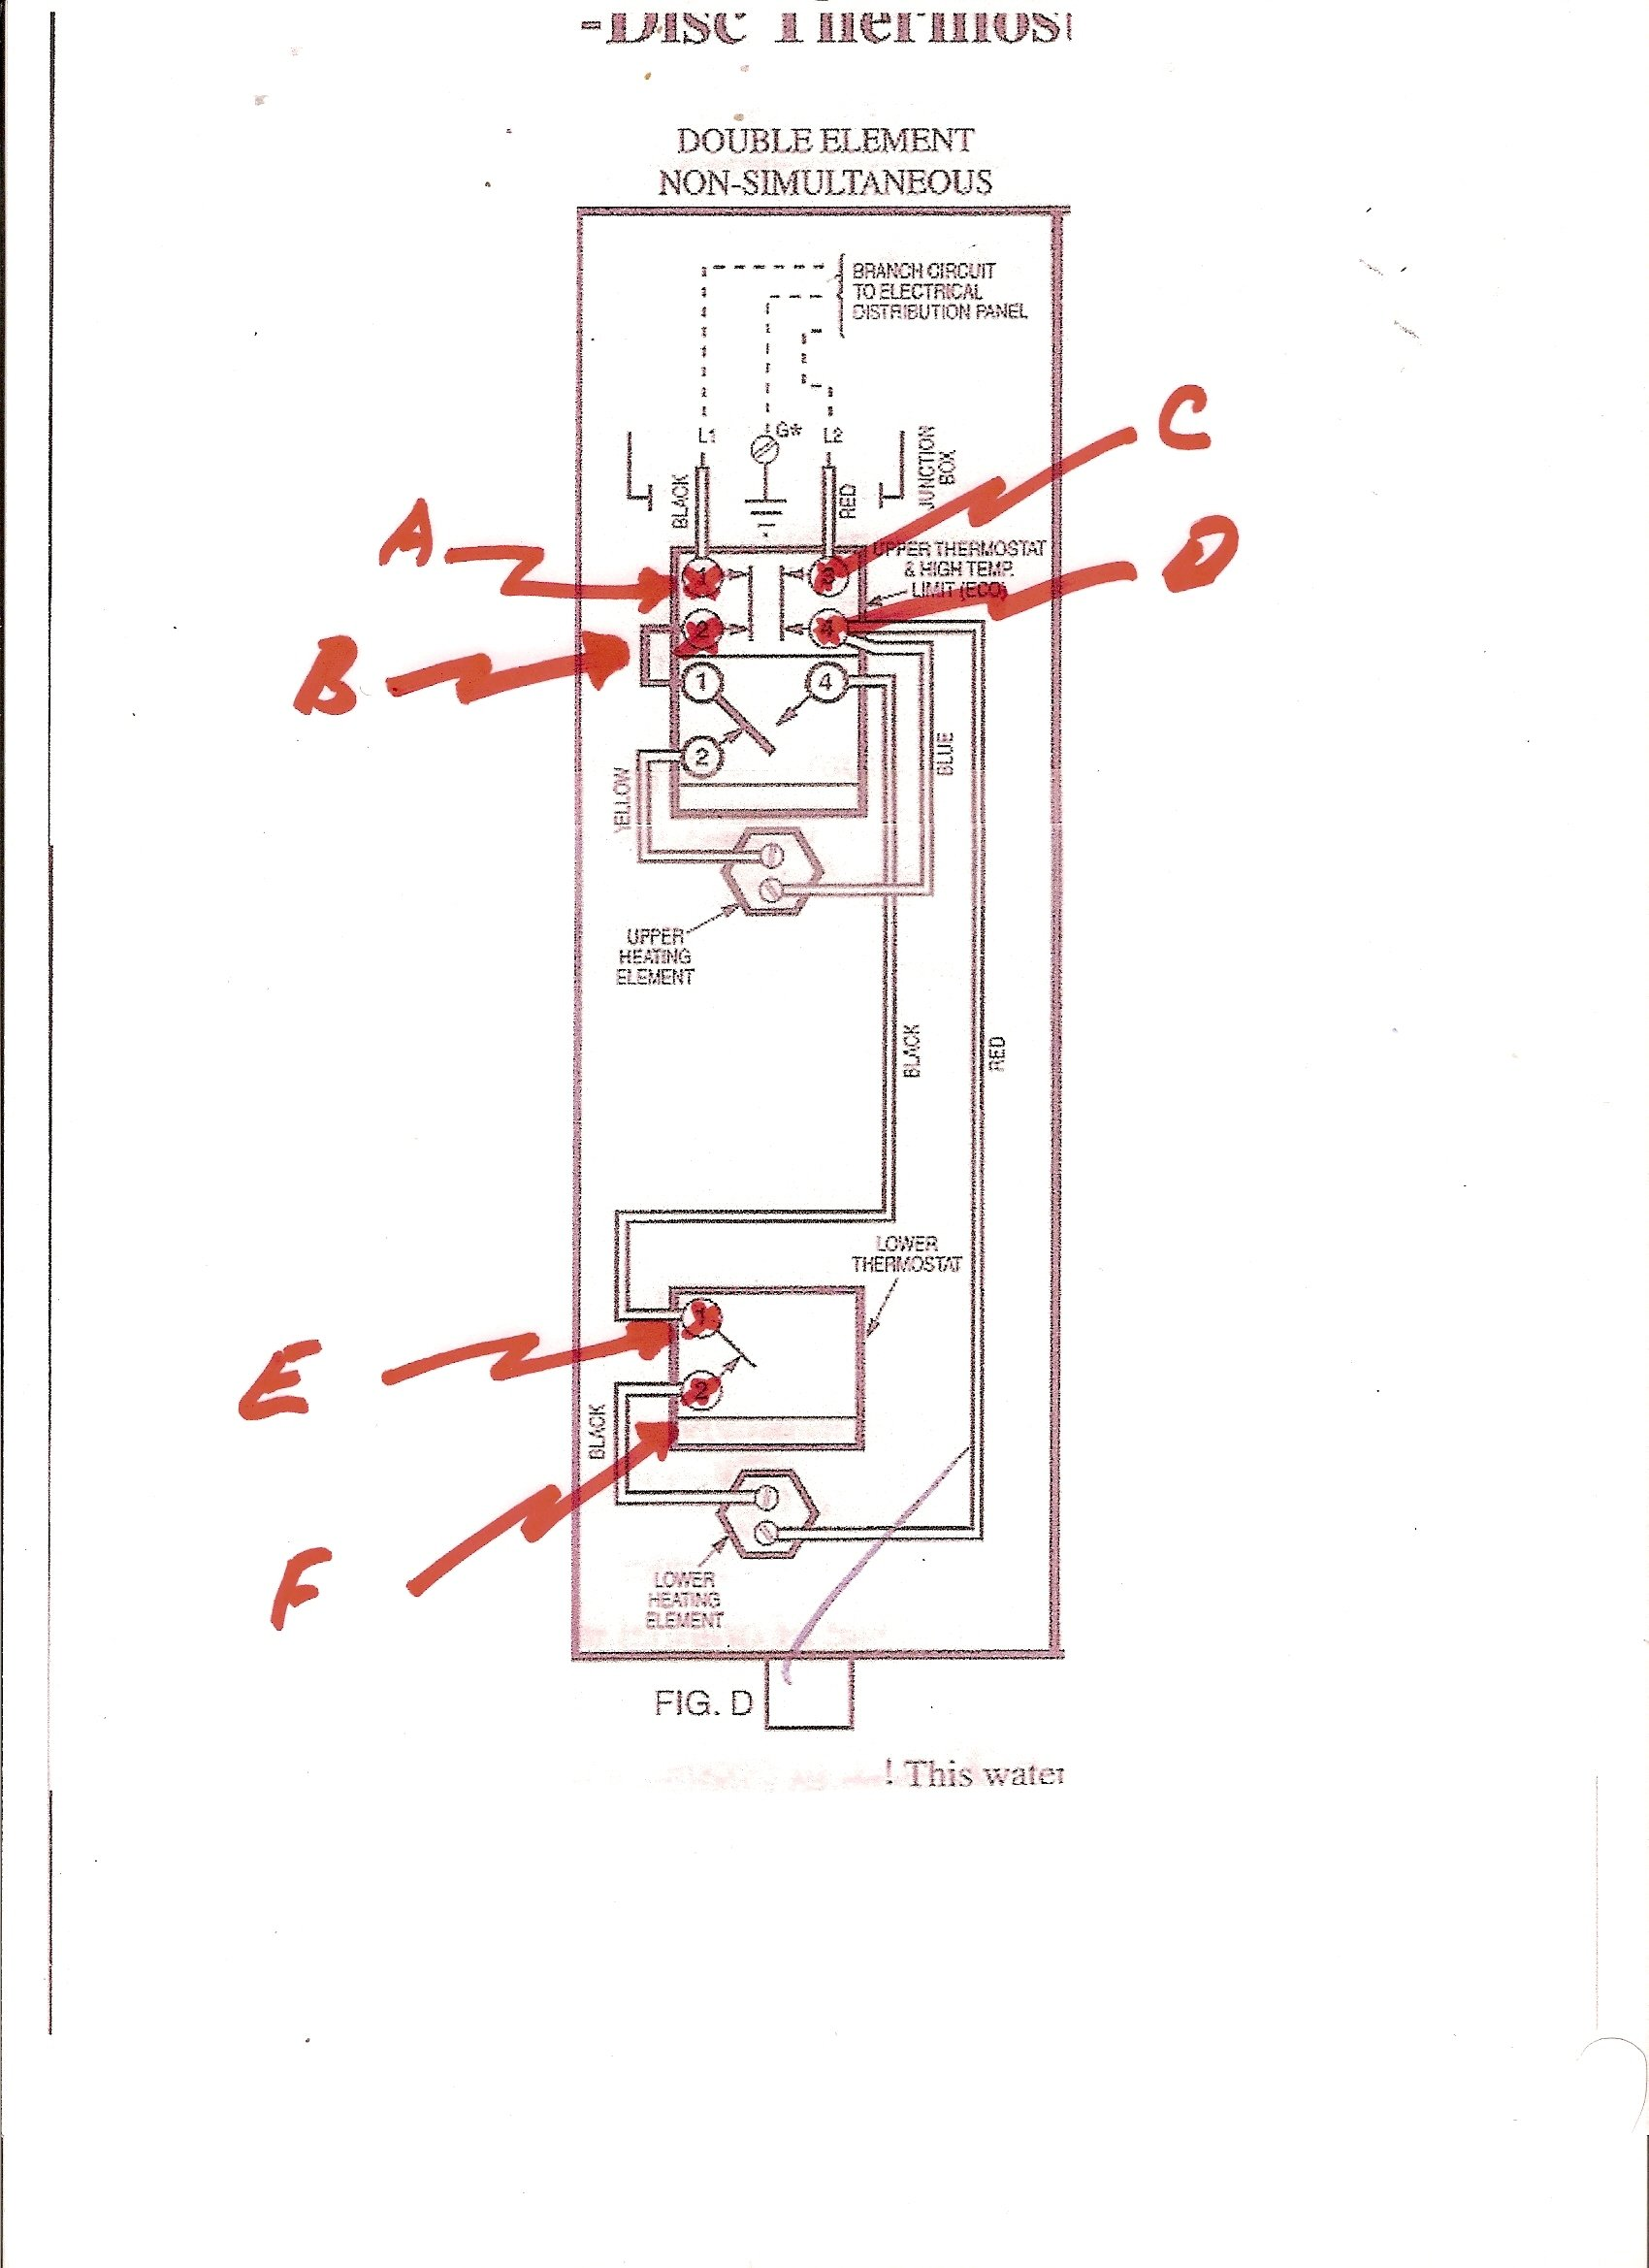 2010 11 18_183514_wh_wiring_0020001 i have a rheem 50 gallon, double element water heater which is one rheem water heater wiring diagram at readyjetset.co